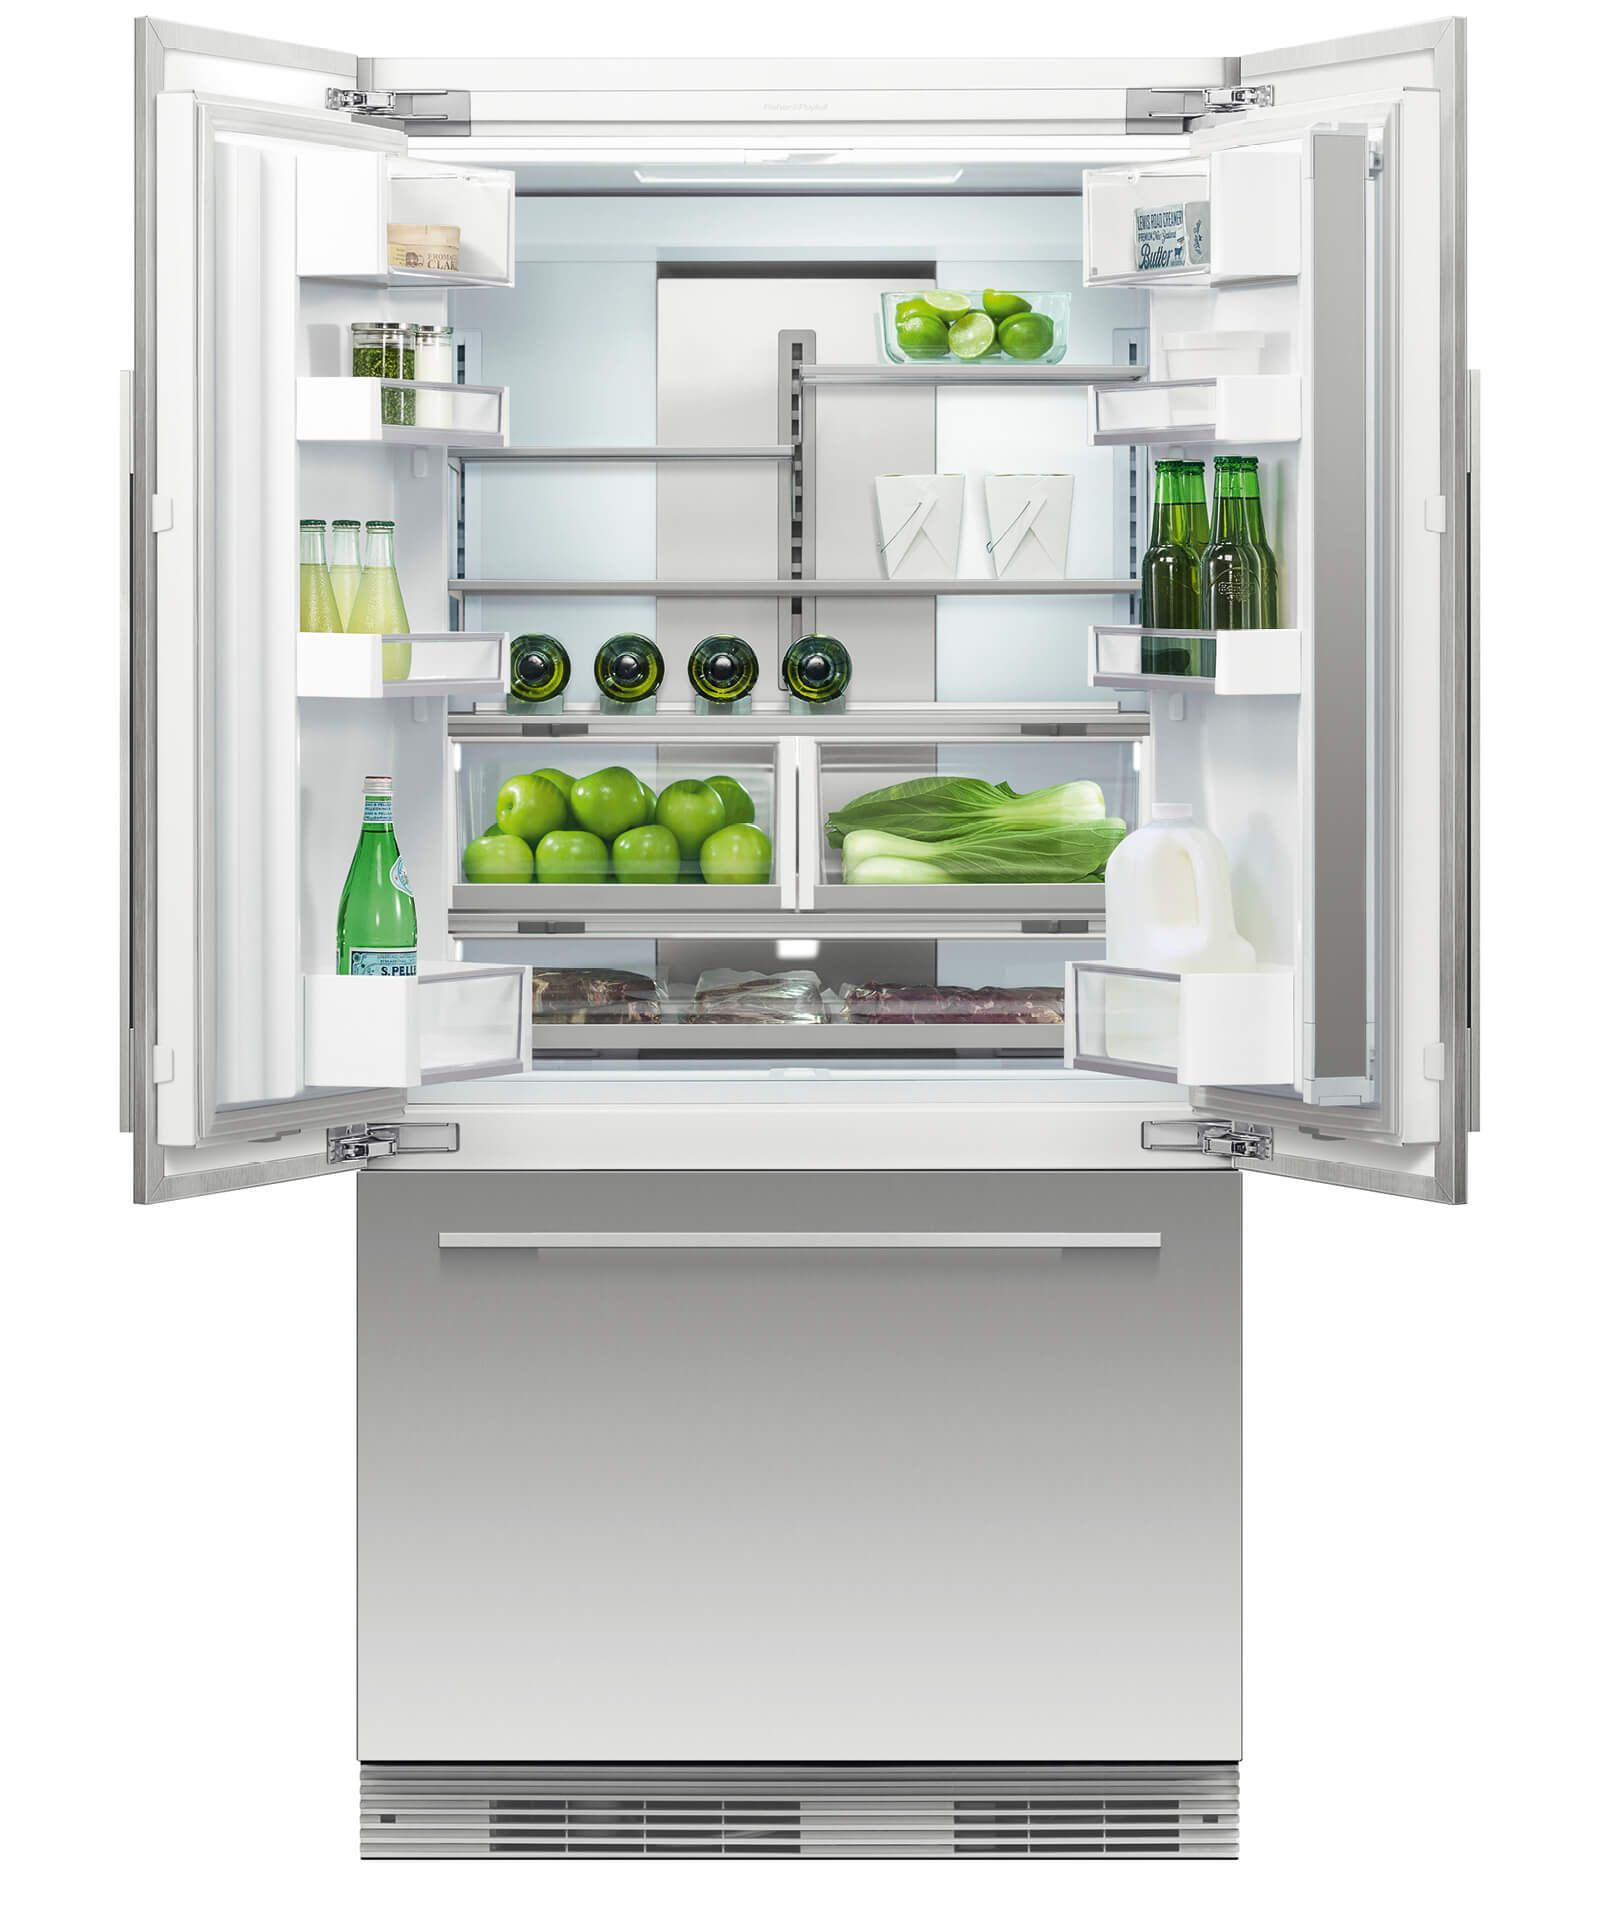 Rs36a72j1 N Activesmart Refrigerator 36 French Door Integrated With Ice 72 Tall 25075 French Doors French Doors Interior Fridge French Door